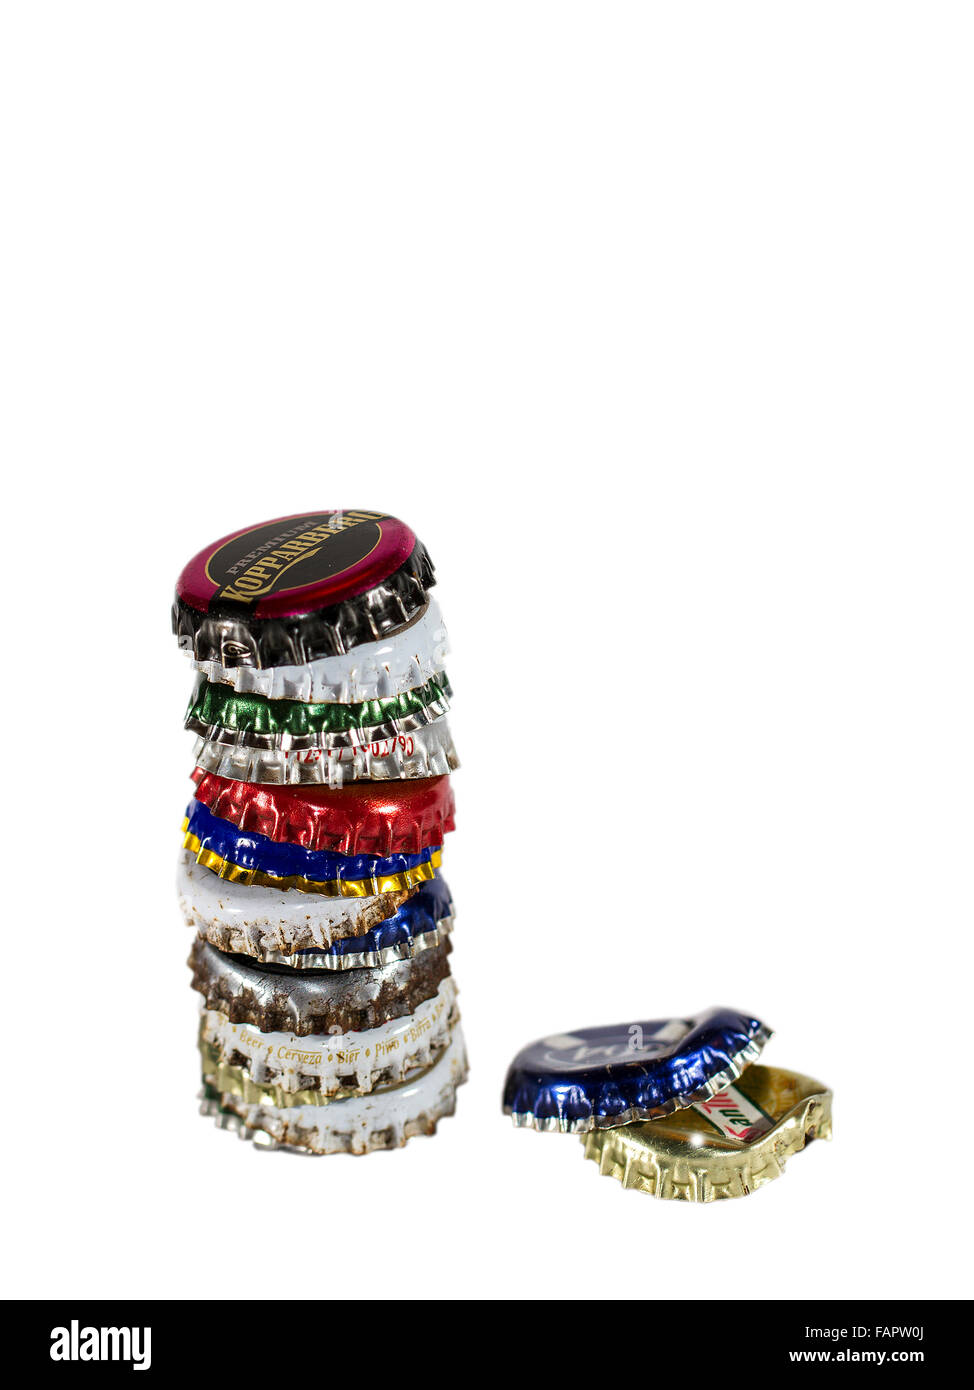 Stack of colourful bottle tops on a white background - Stock Image